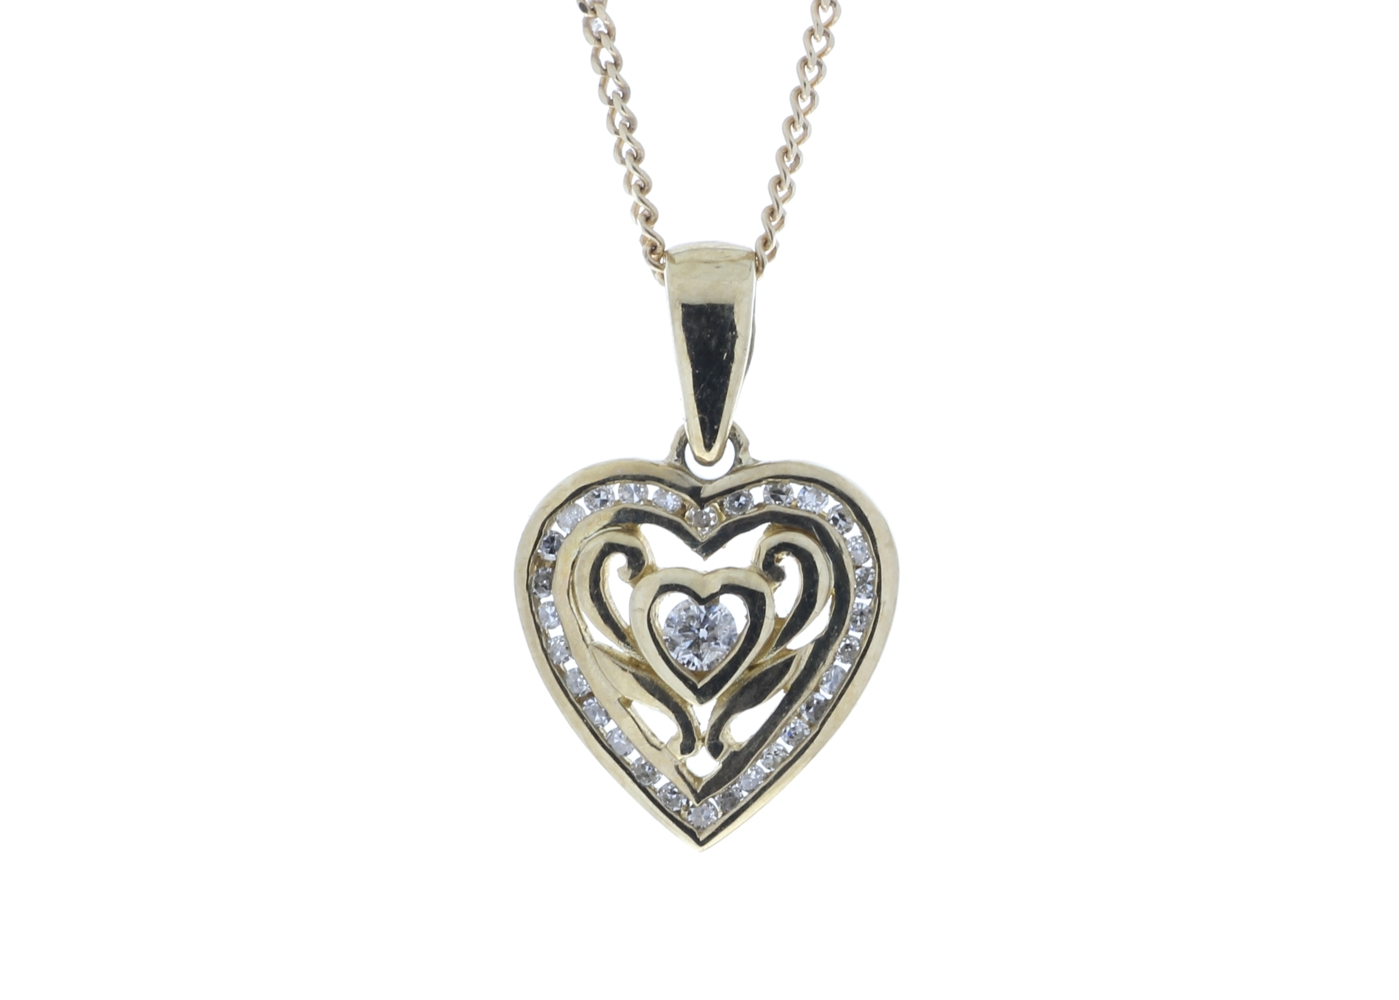 9ct Yellow Gold Heart Pendant Set With Diamonds With Centre Heart and Swirls 0.18 Carats